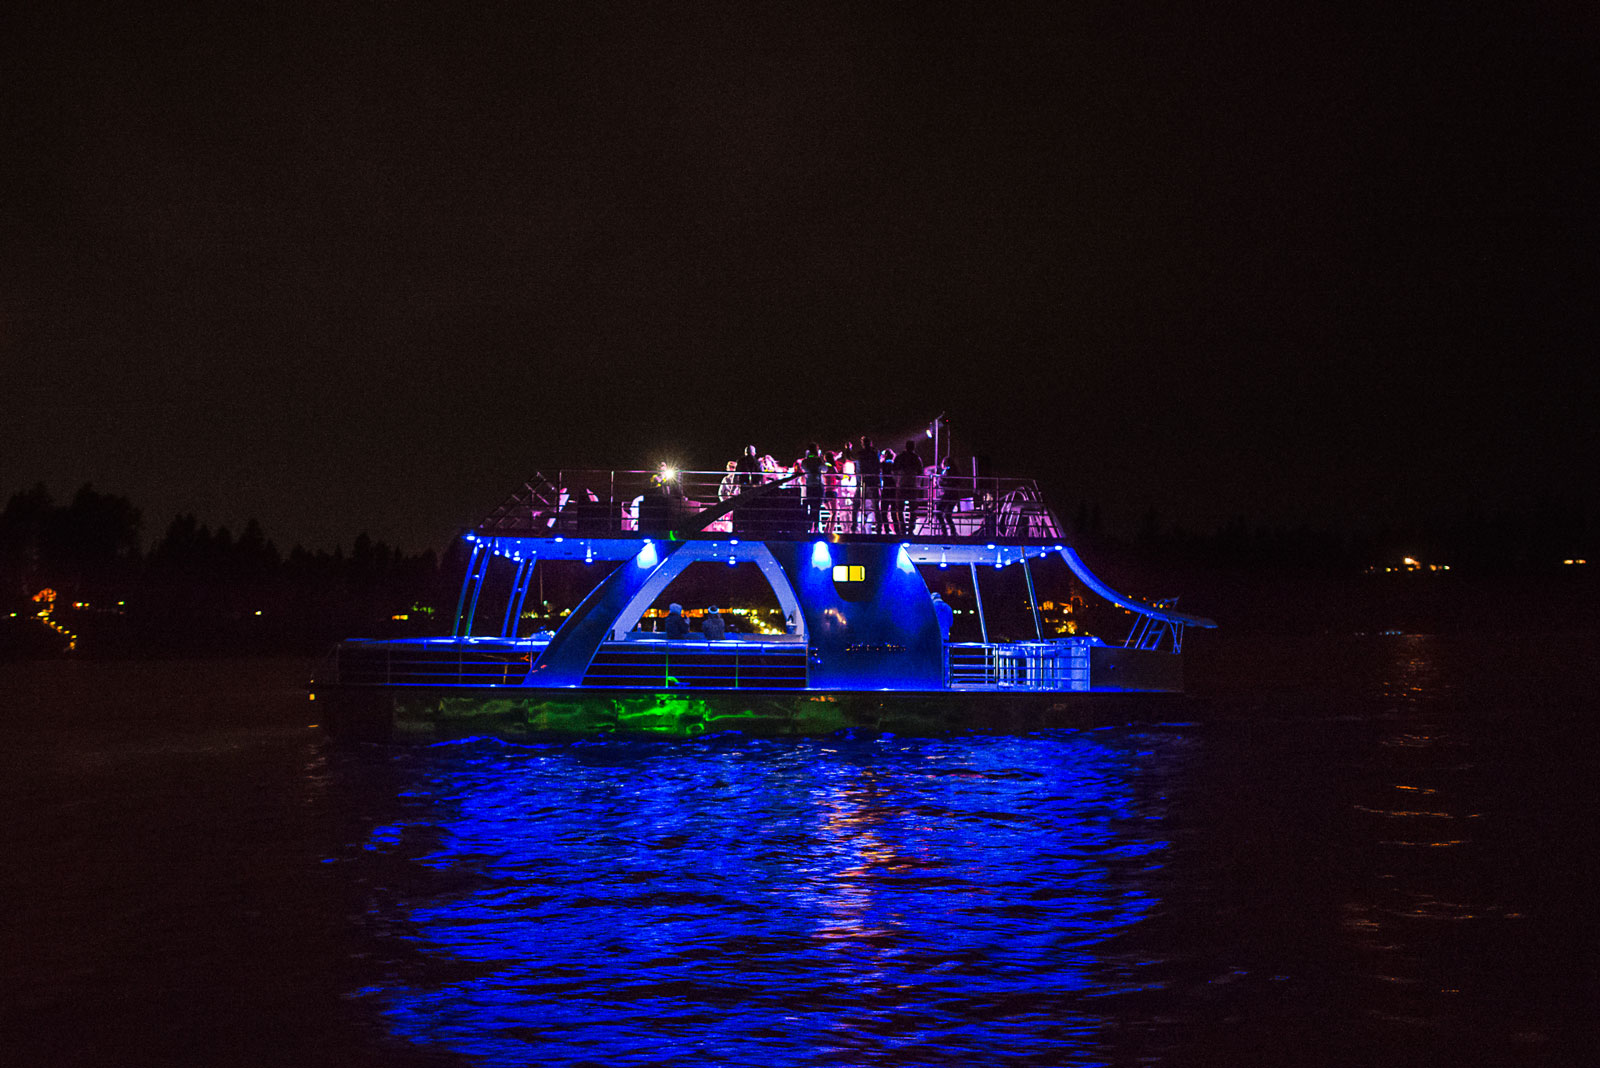 nighttimepartyboat